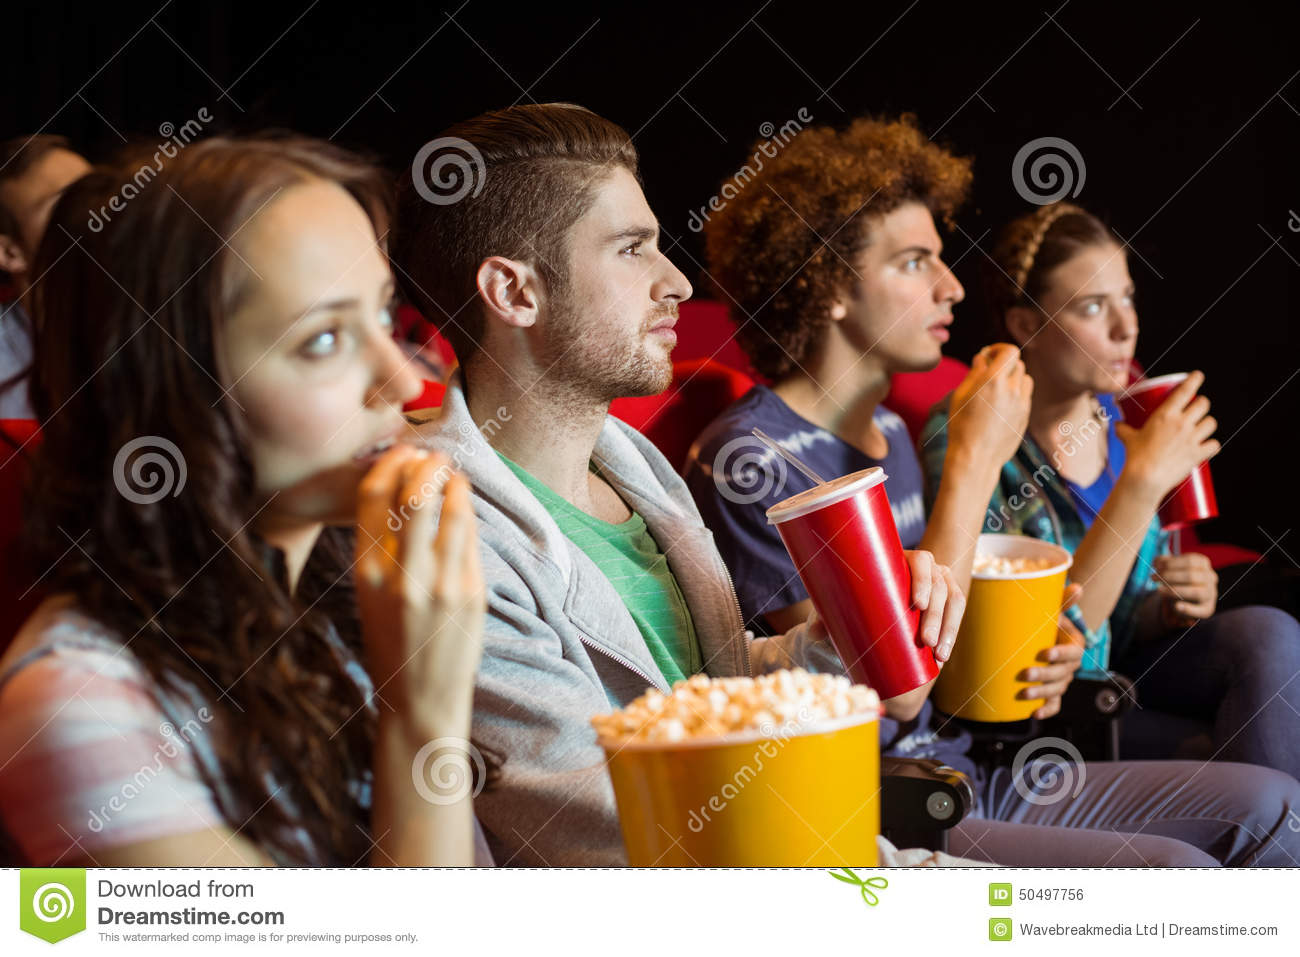 young-friends-watching-film-cinema-50497756.jpg